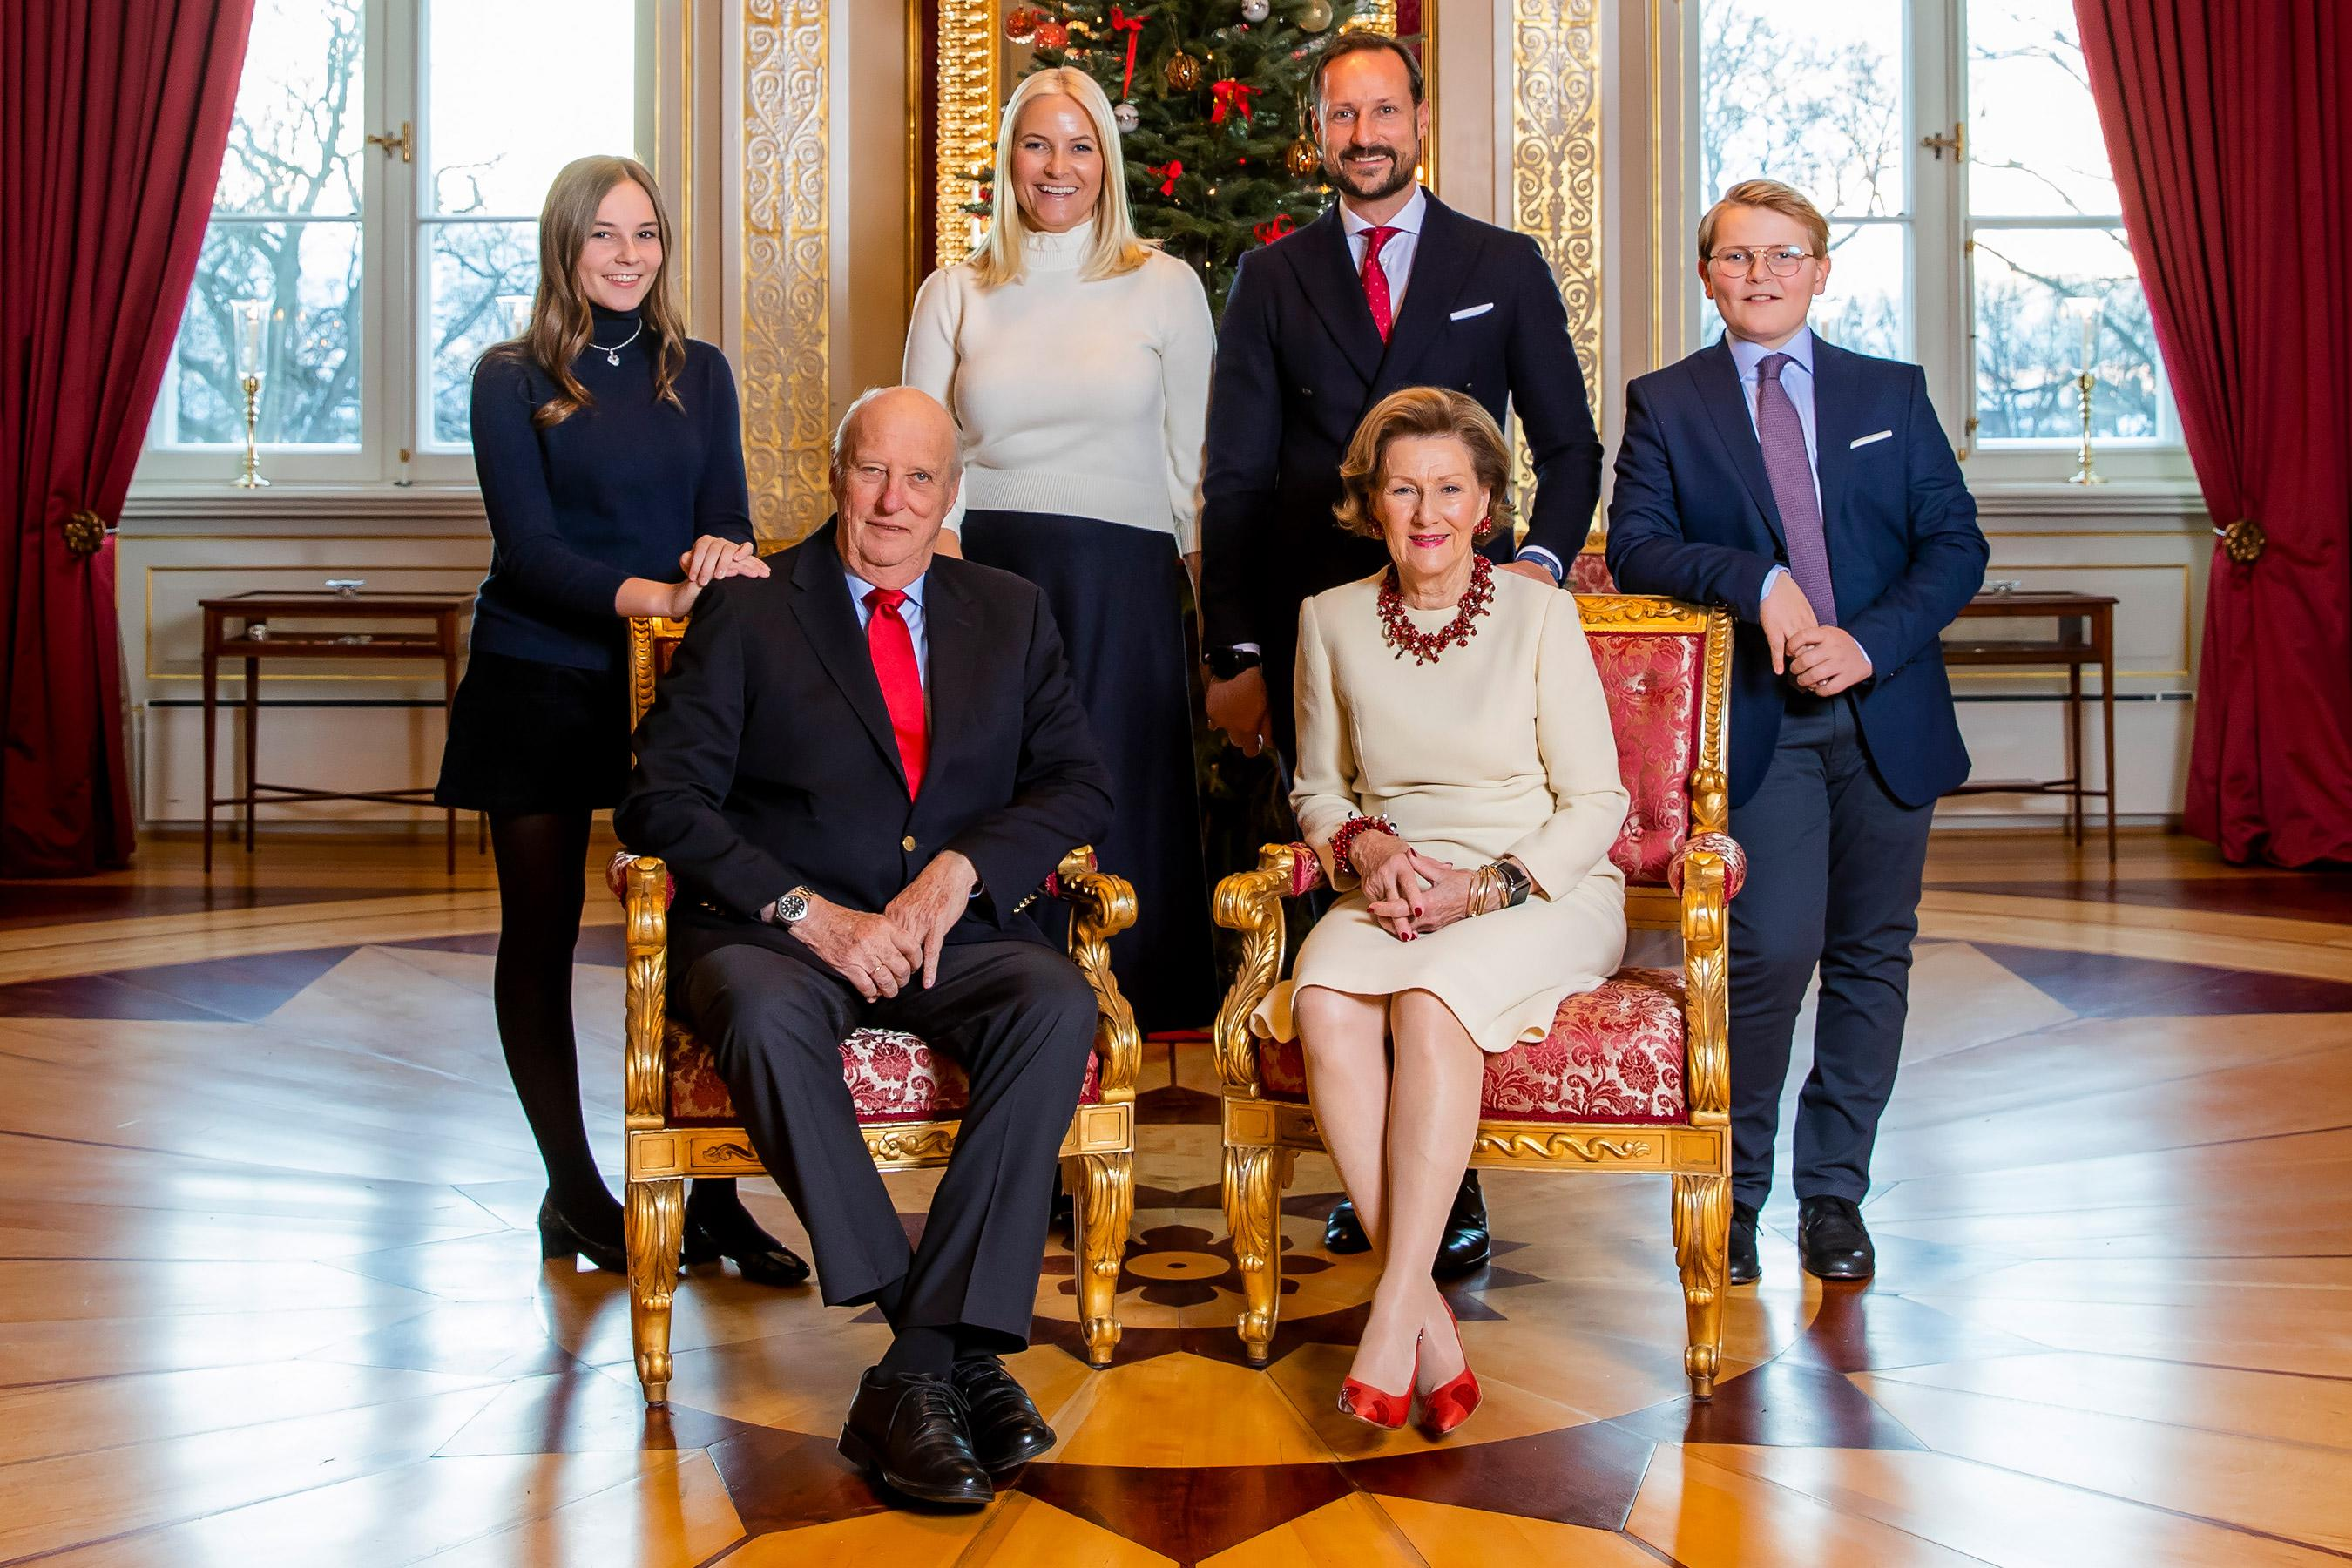 Merry Christmas In Norwegian.Merry Christmas From Norway See Princess Mette Marit In The